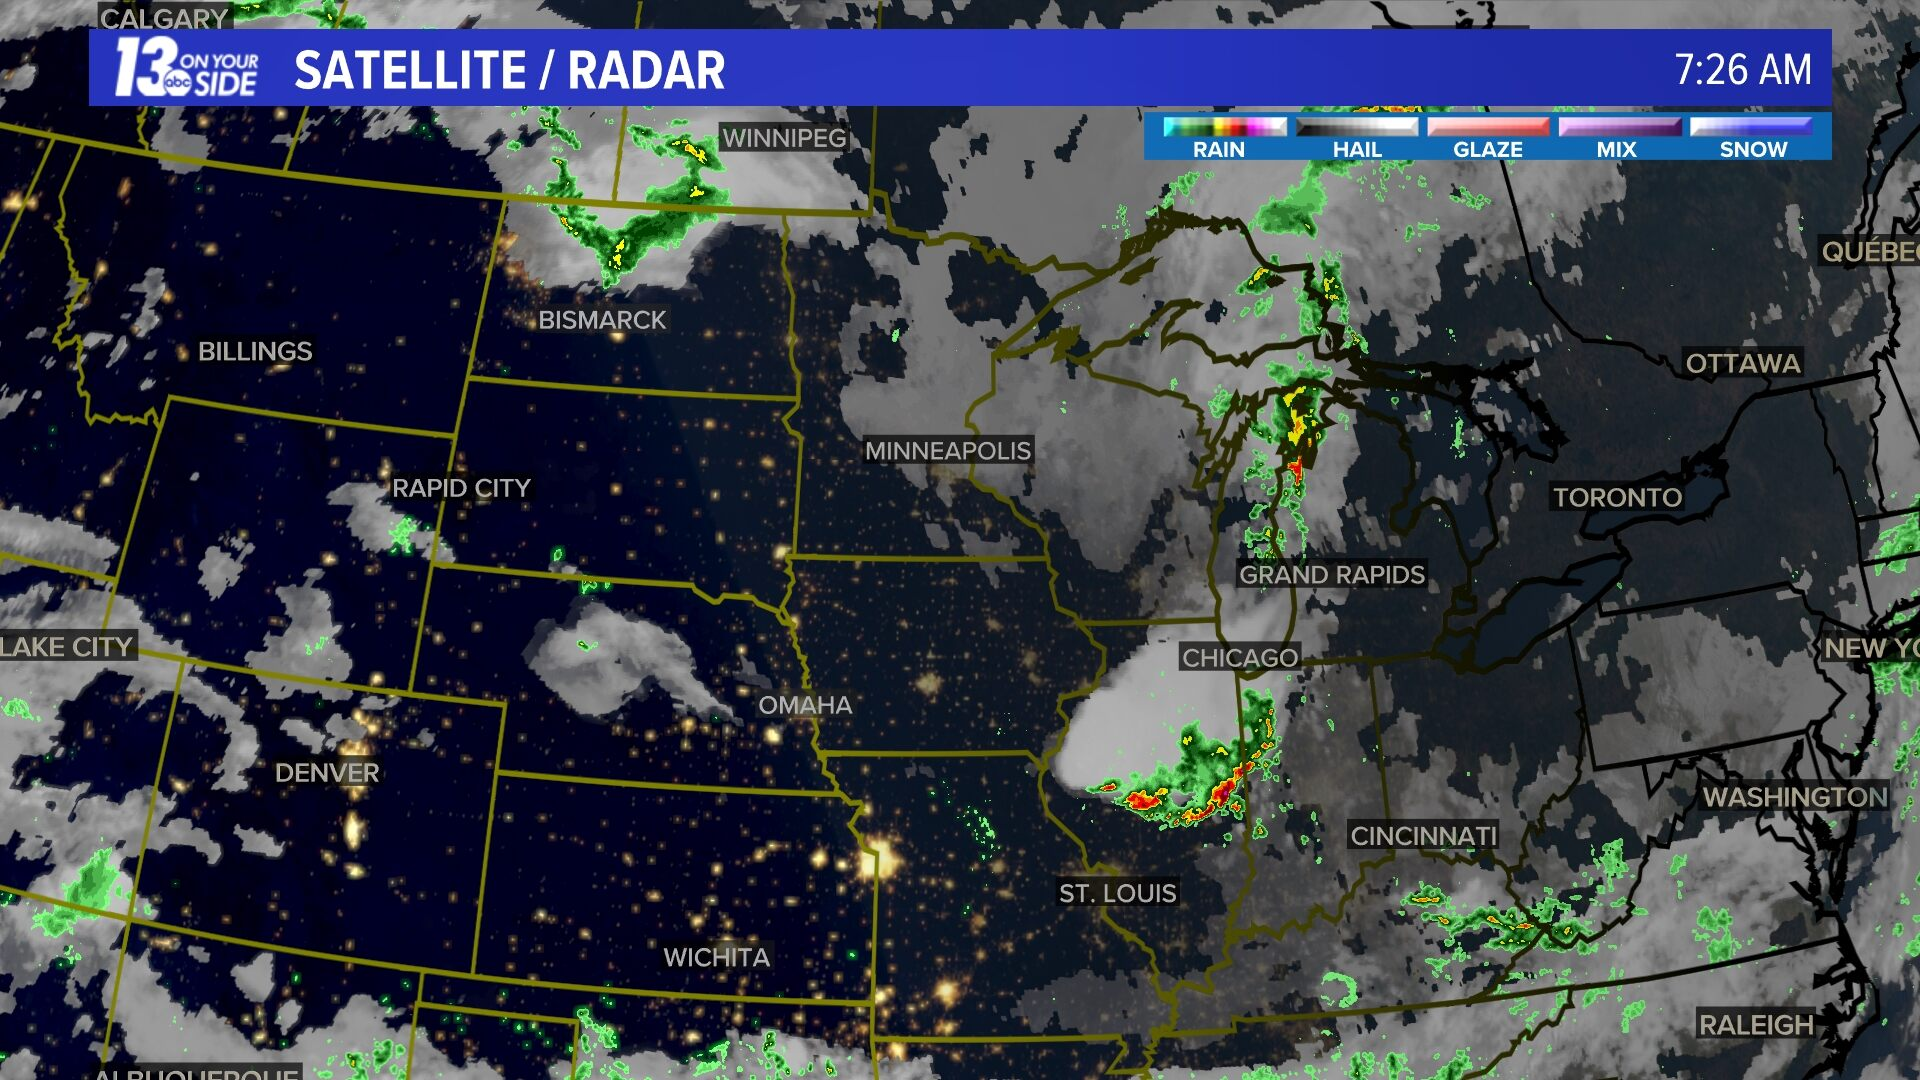 Satellite Radar